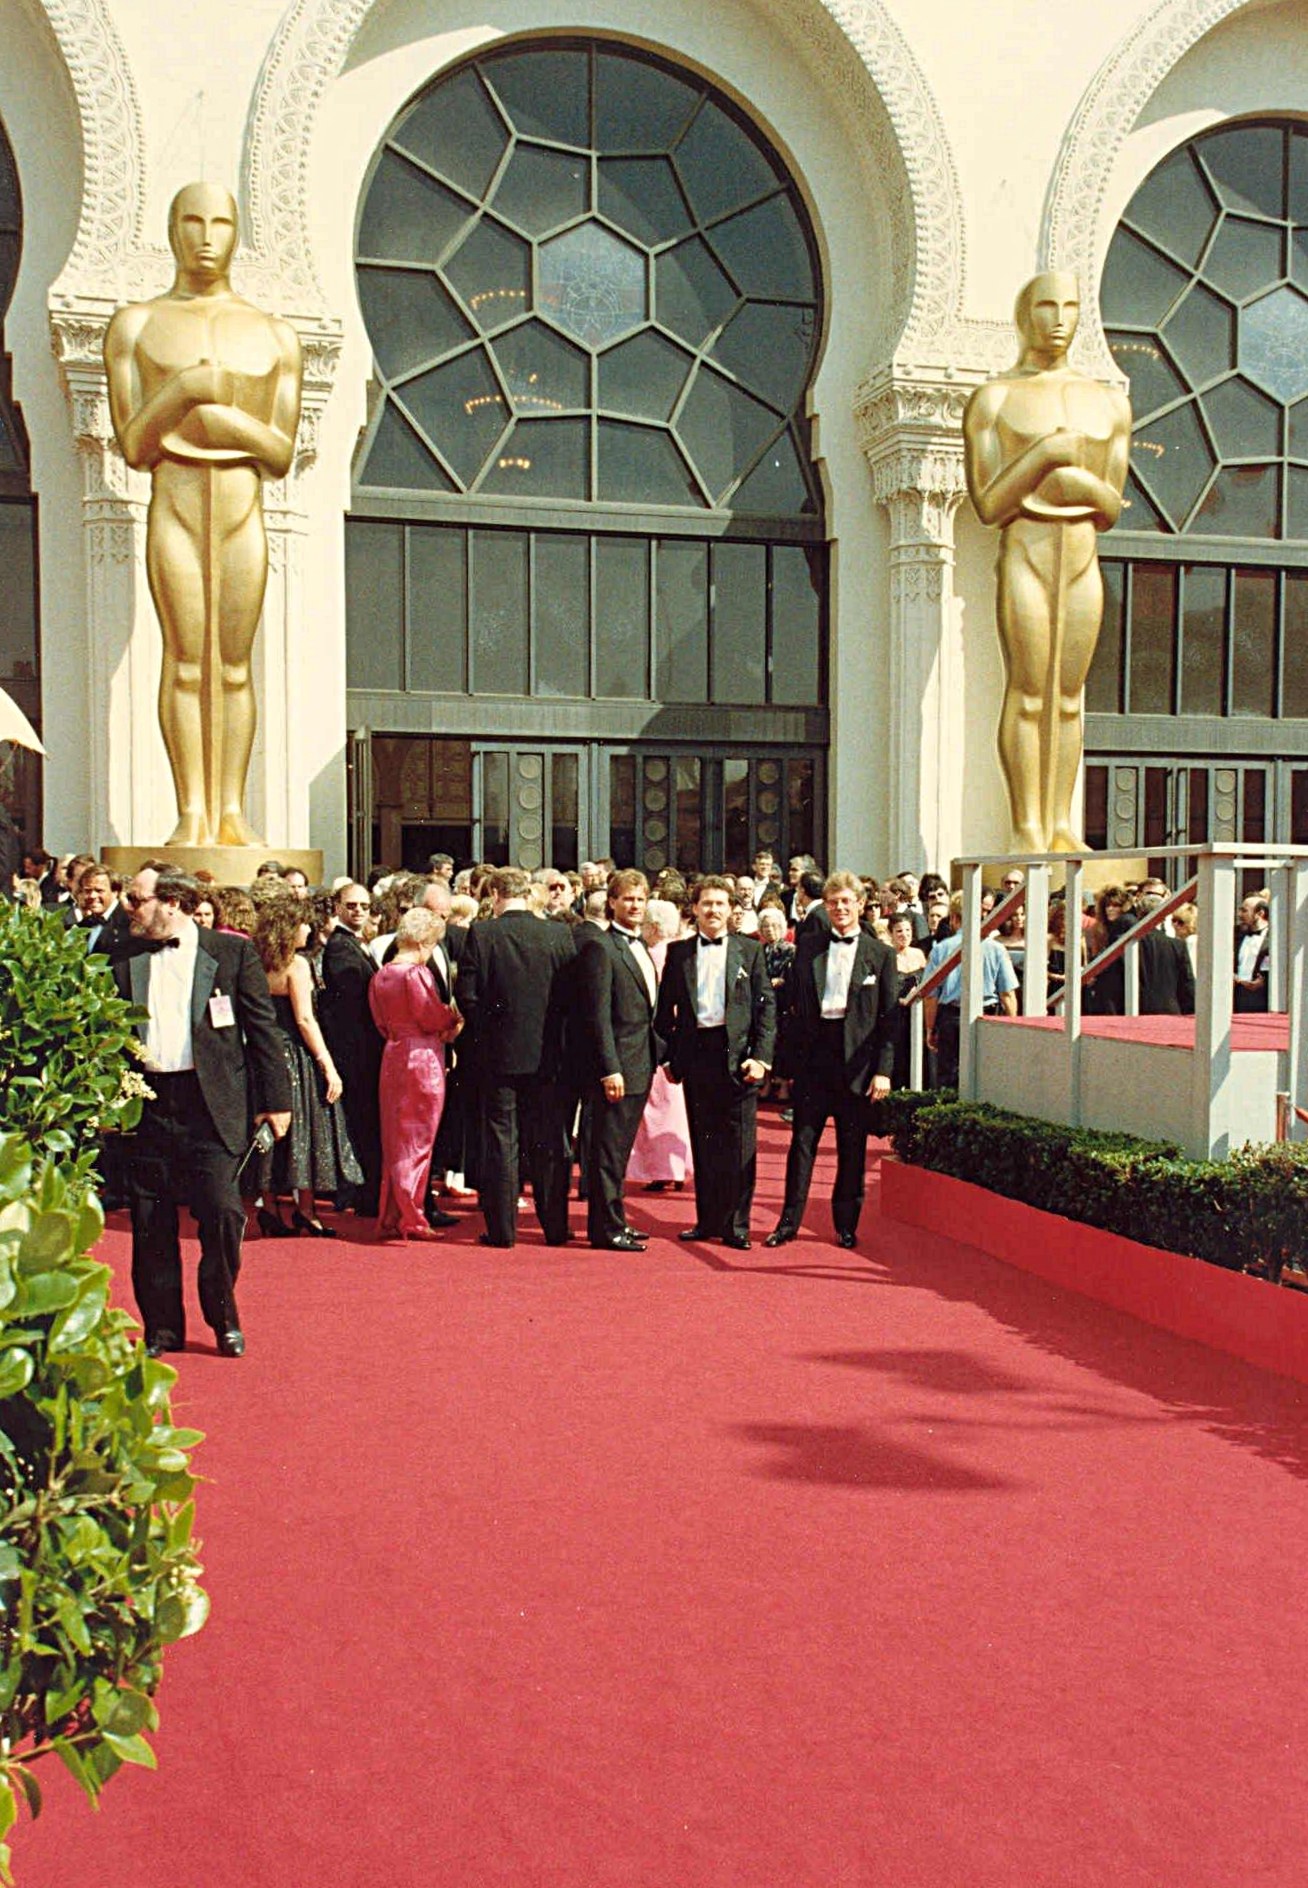 Fasciculus 1988 academy awards red carpet jpg